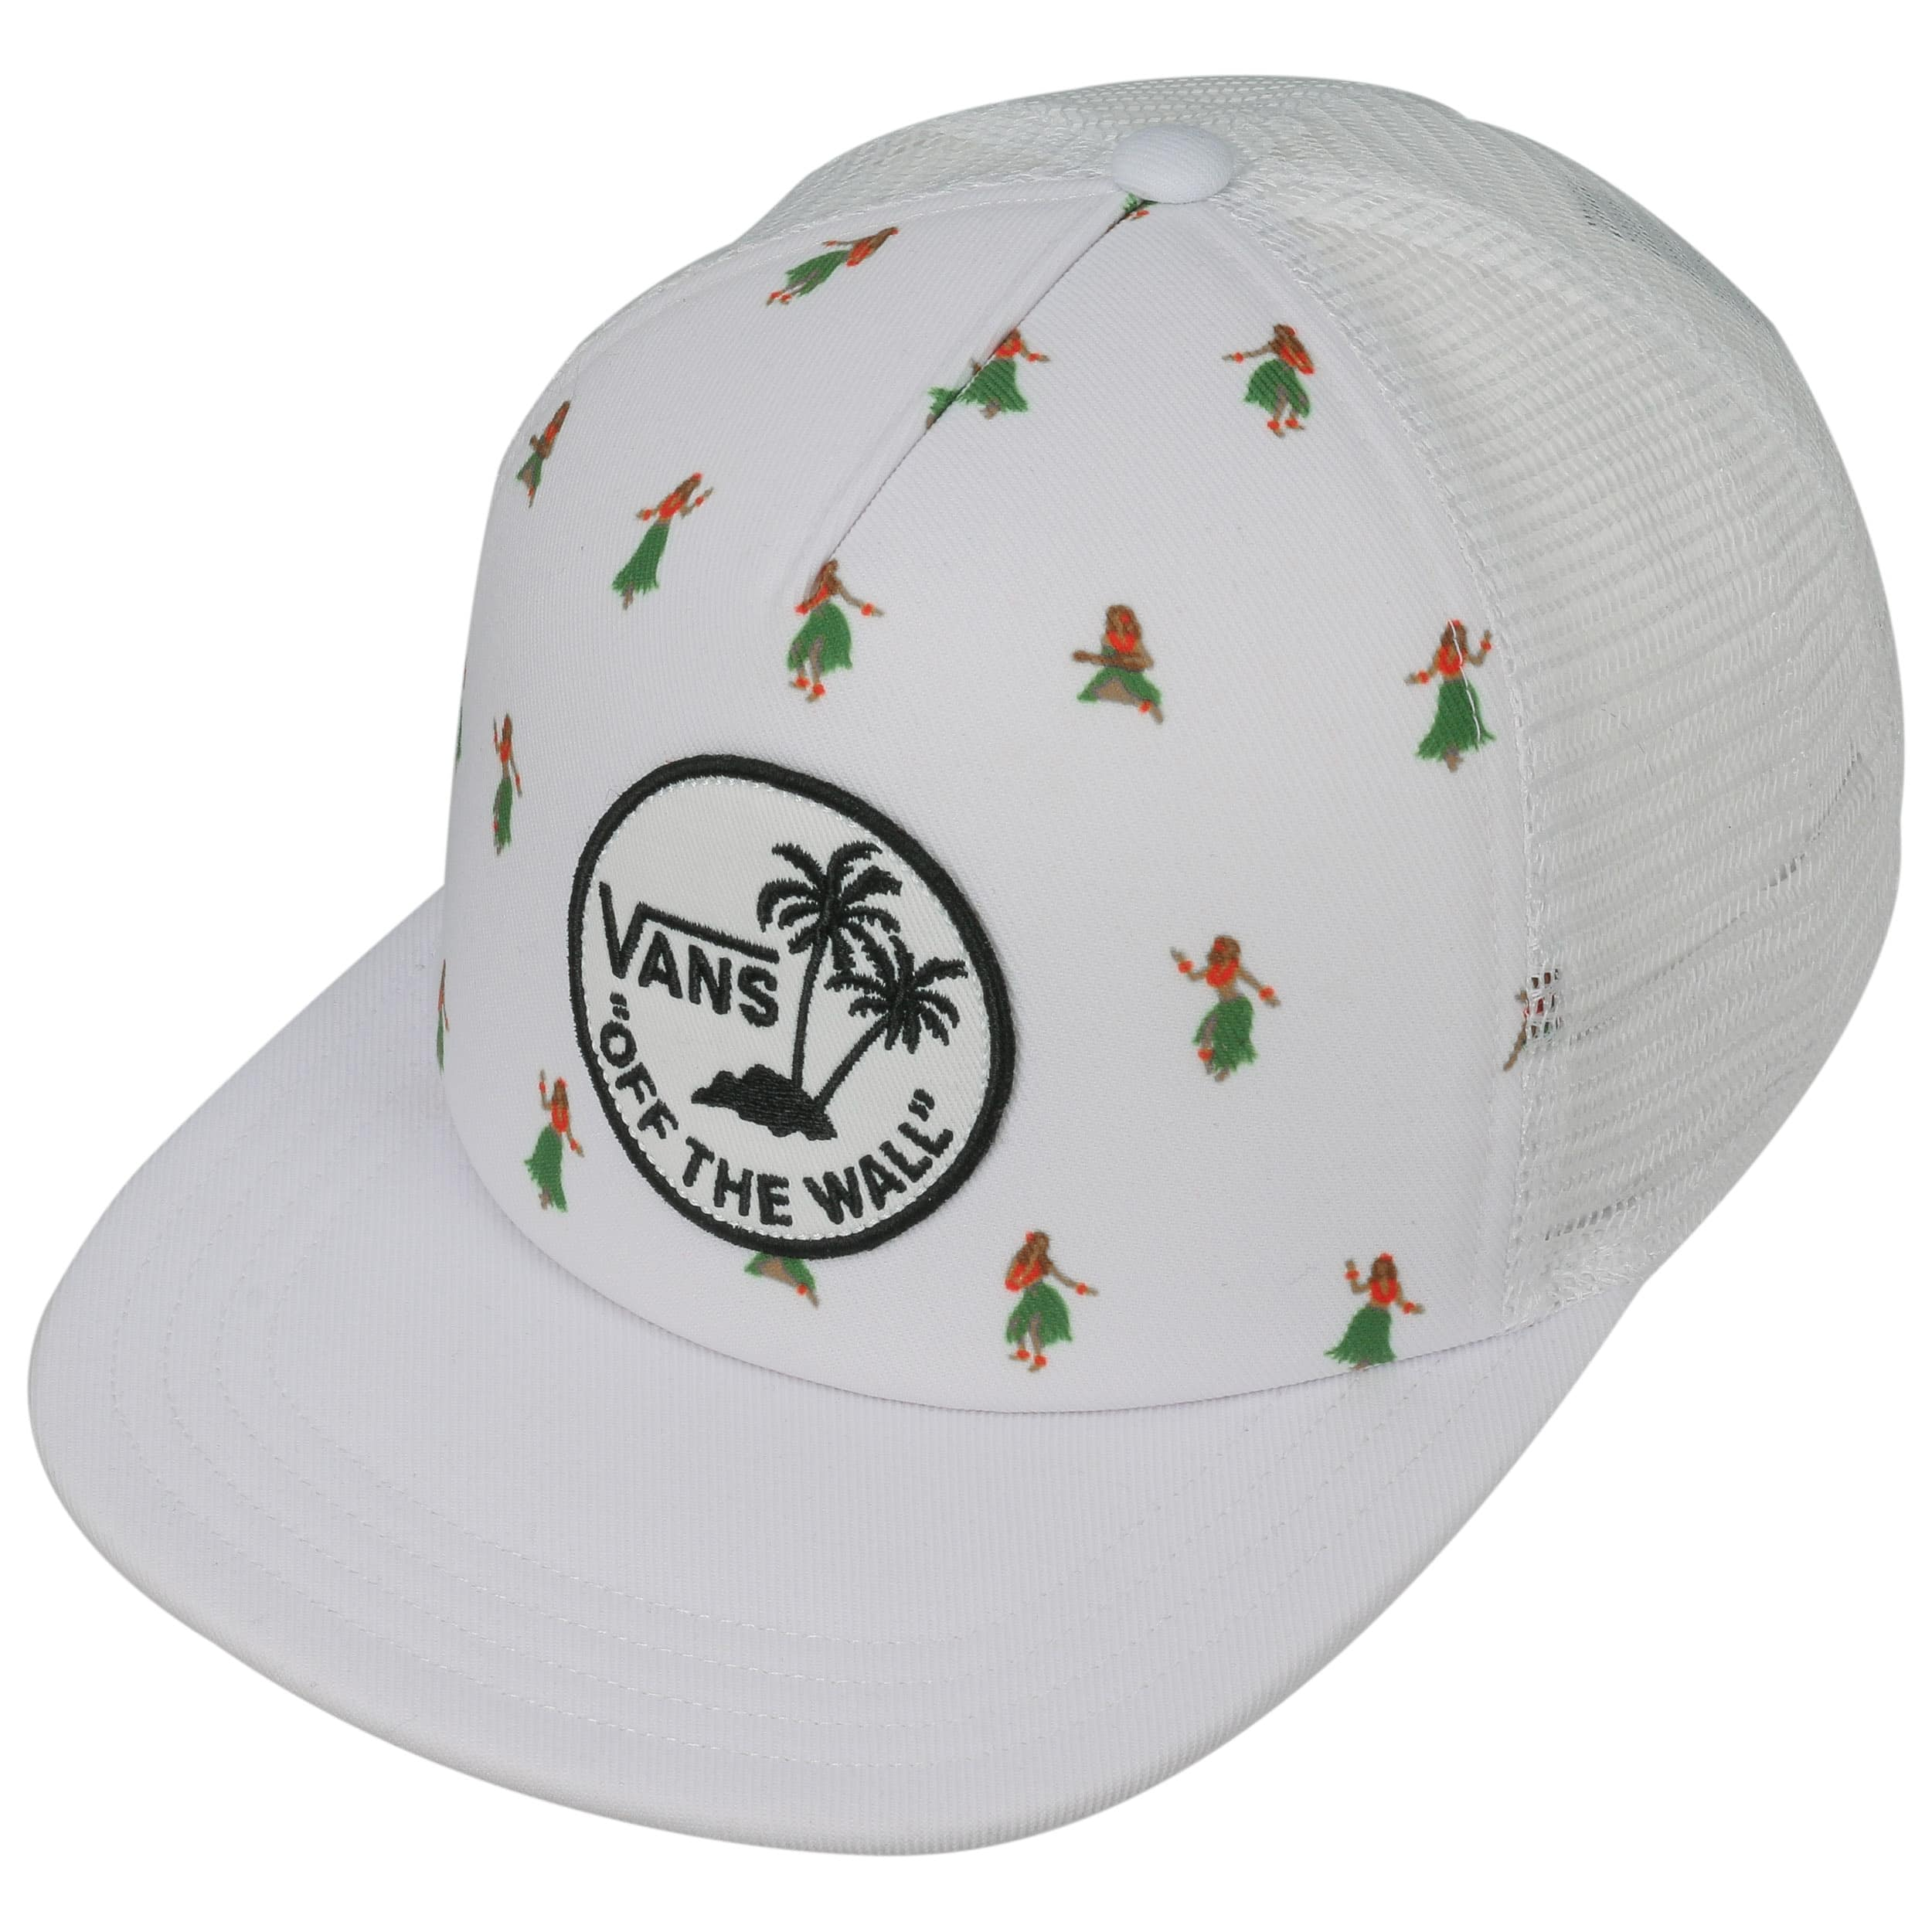 97cec05b9992a Gorra Surf Patch Trucker by Vans - Gorras - sombreroshop.es